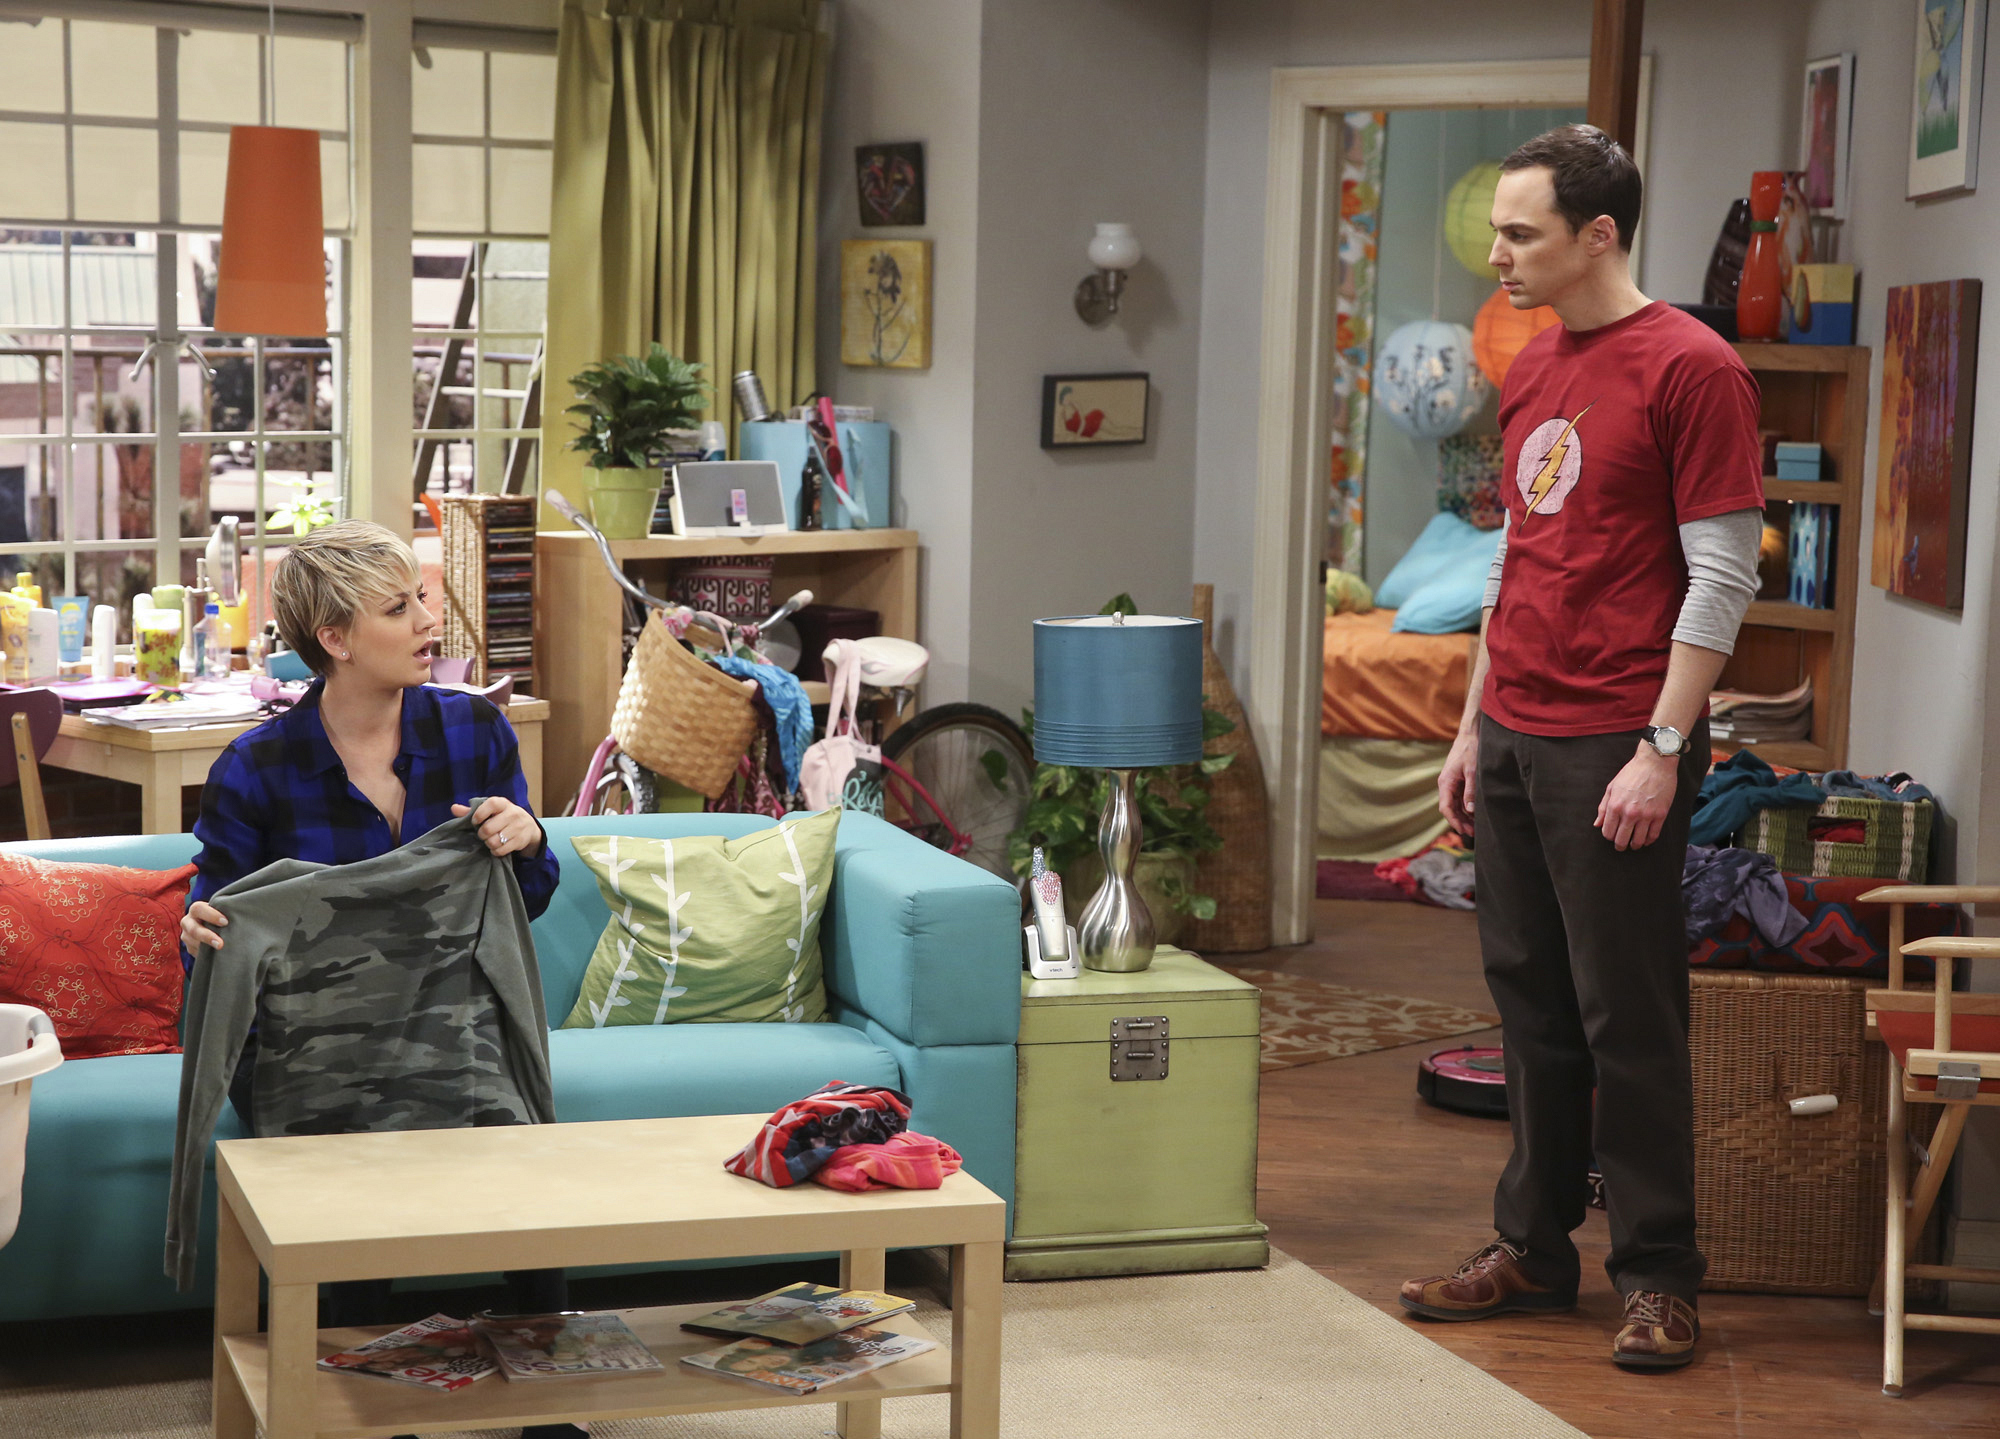 Penny folds laundry while talking to Sheldon